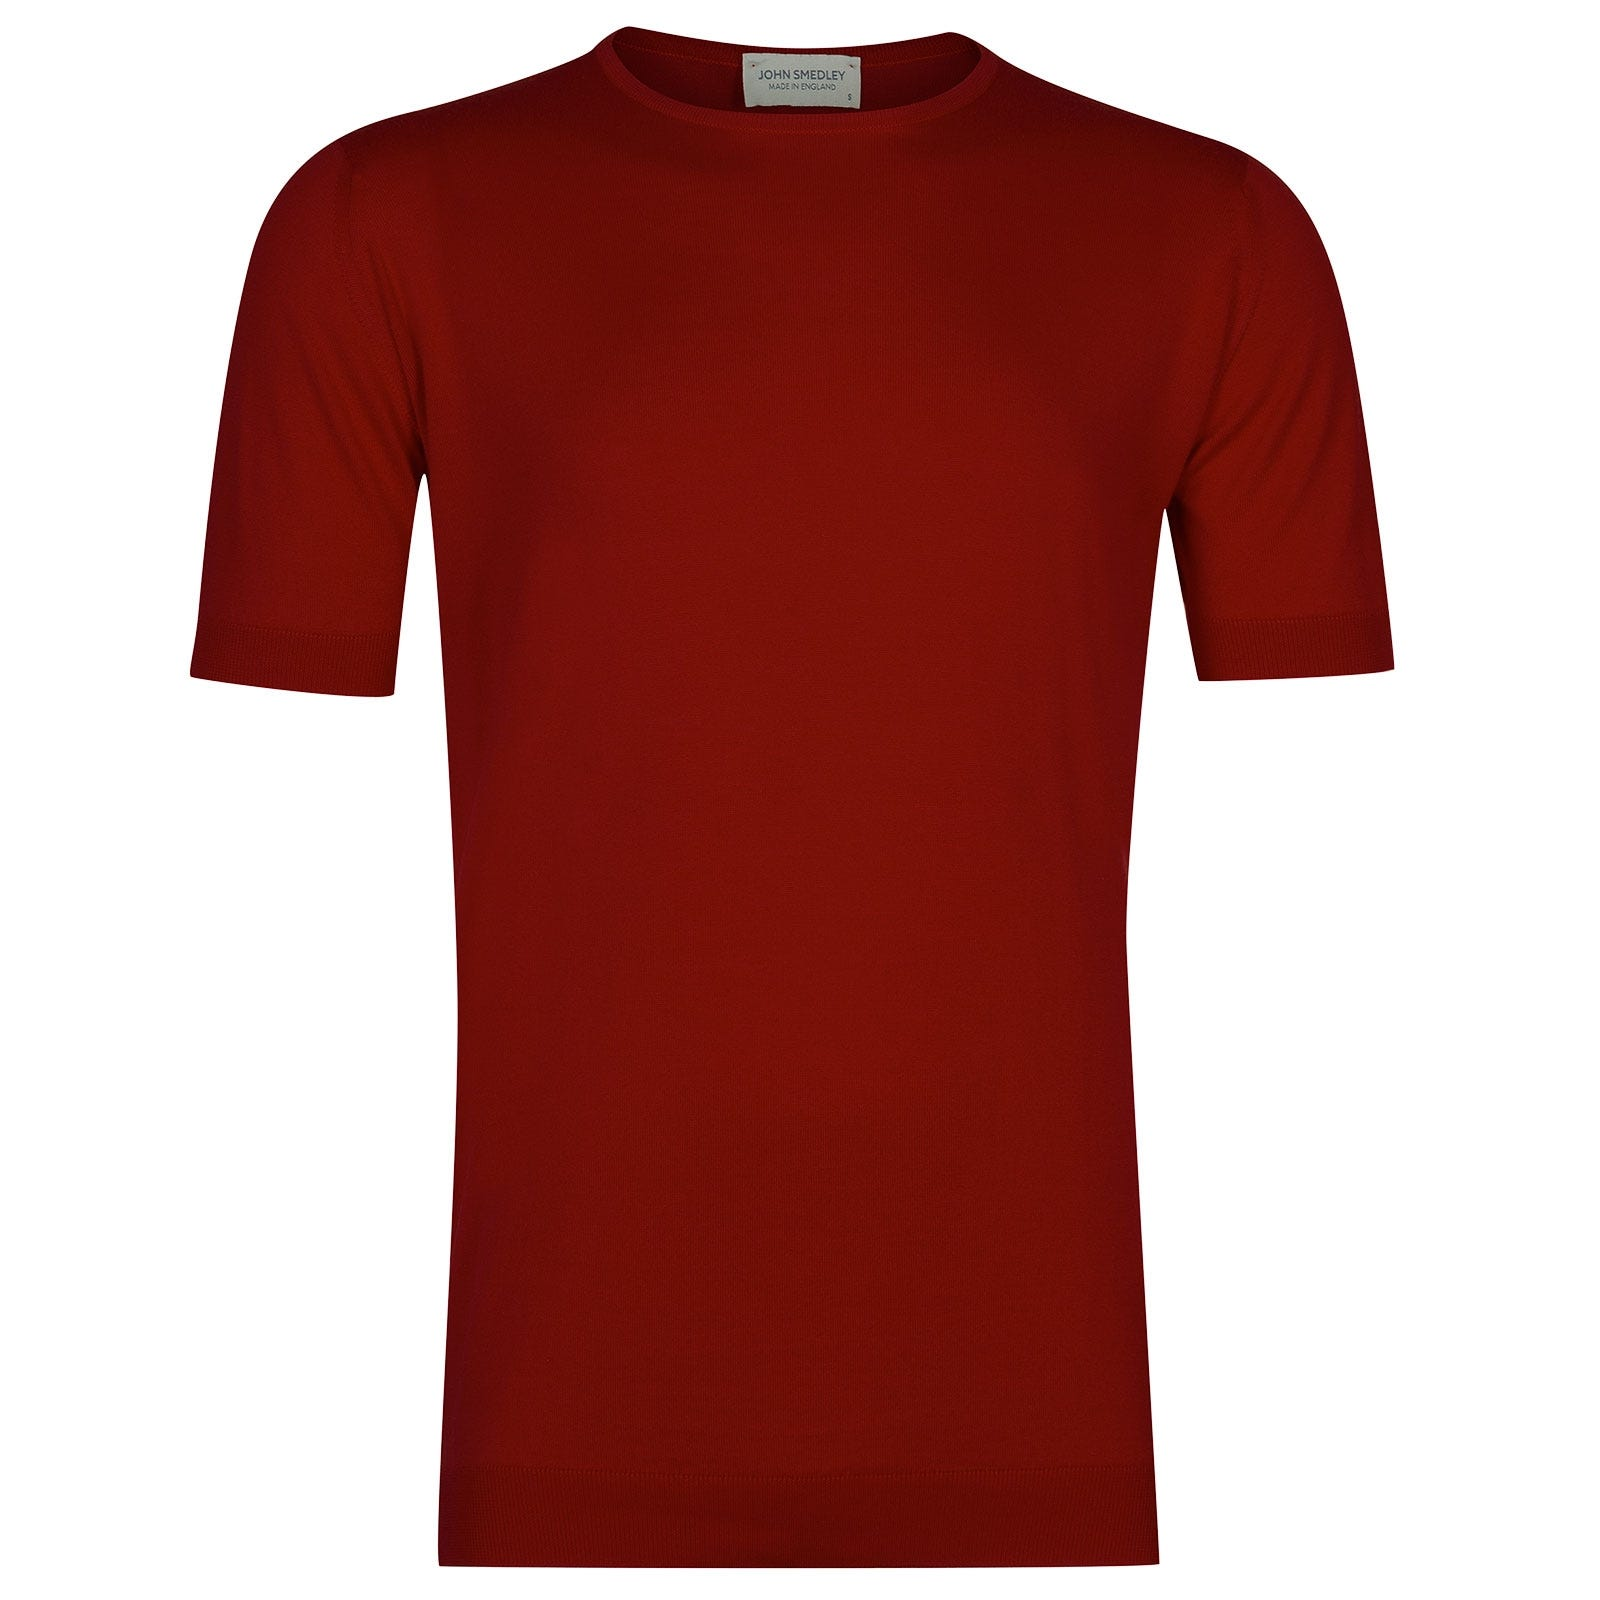 John Smedley Belden Sea Island Cotton T-shirt in Thermal Red-XXL